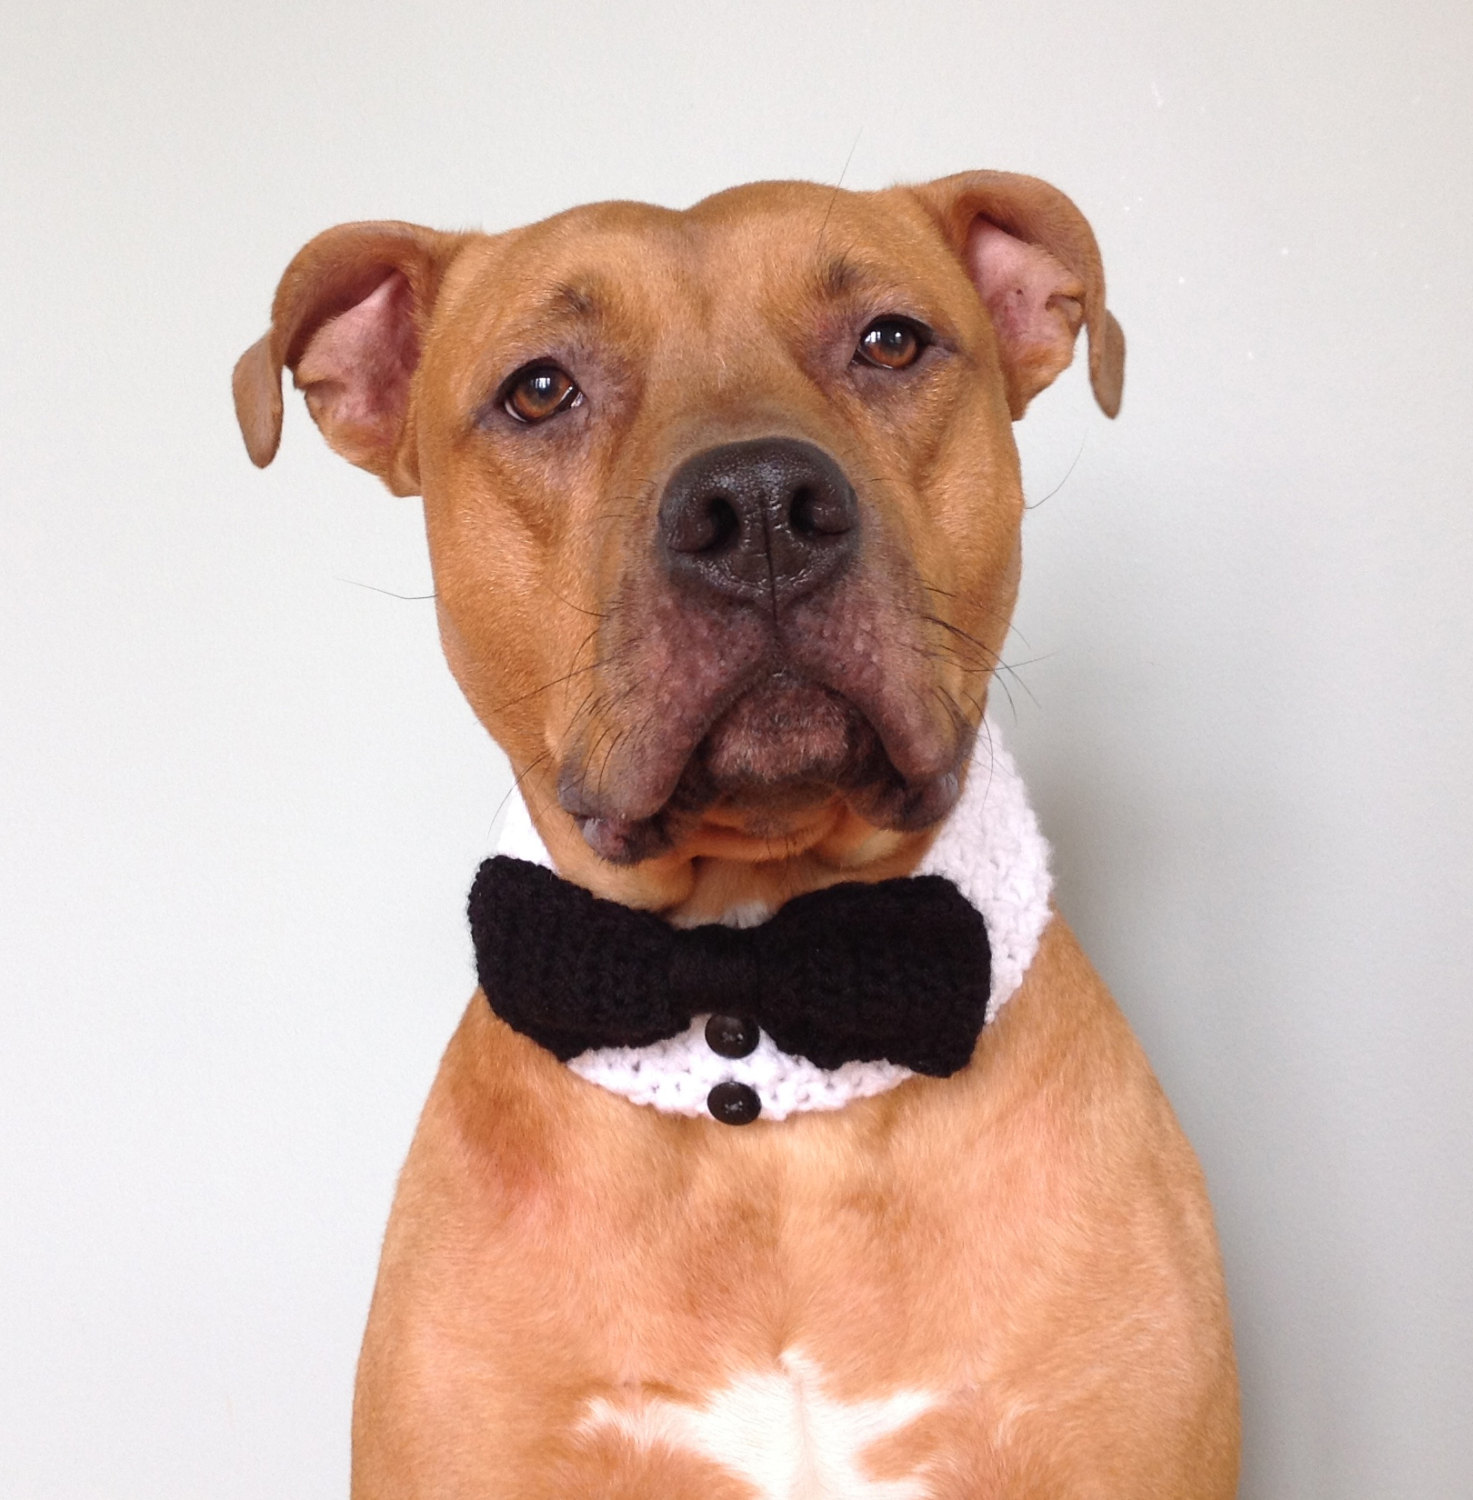 Dog Bowtie Dog Tuxedo Dog Bow Tie Wedding Dog Wedding Dog